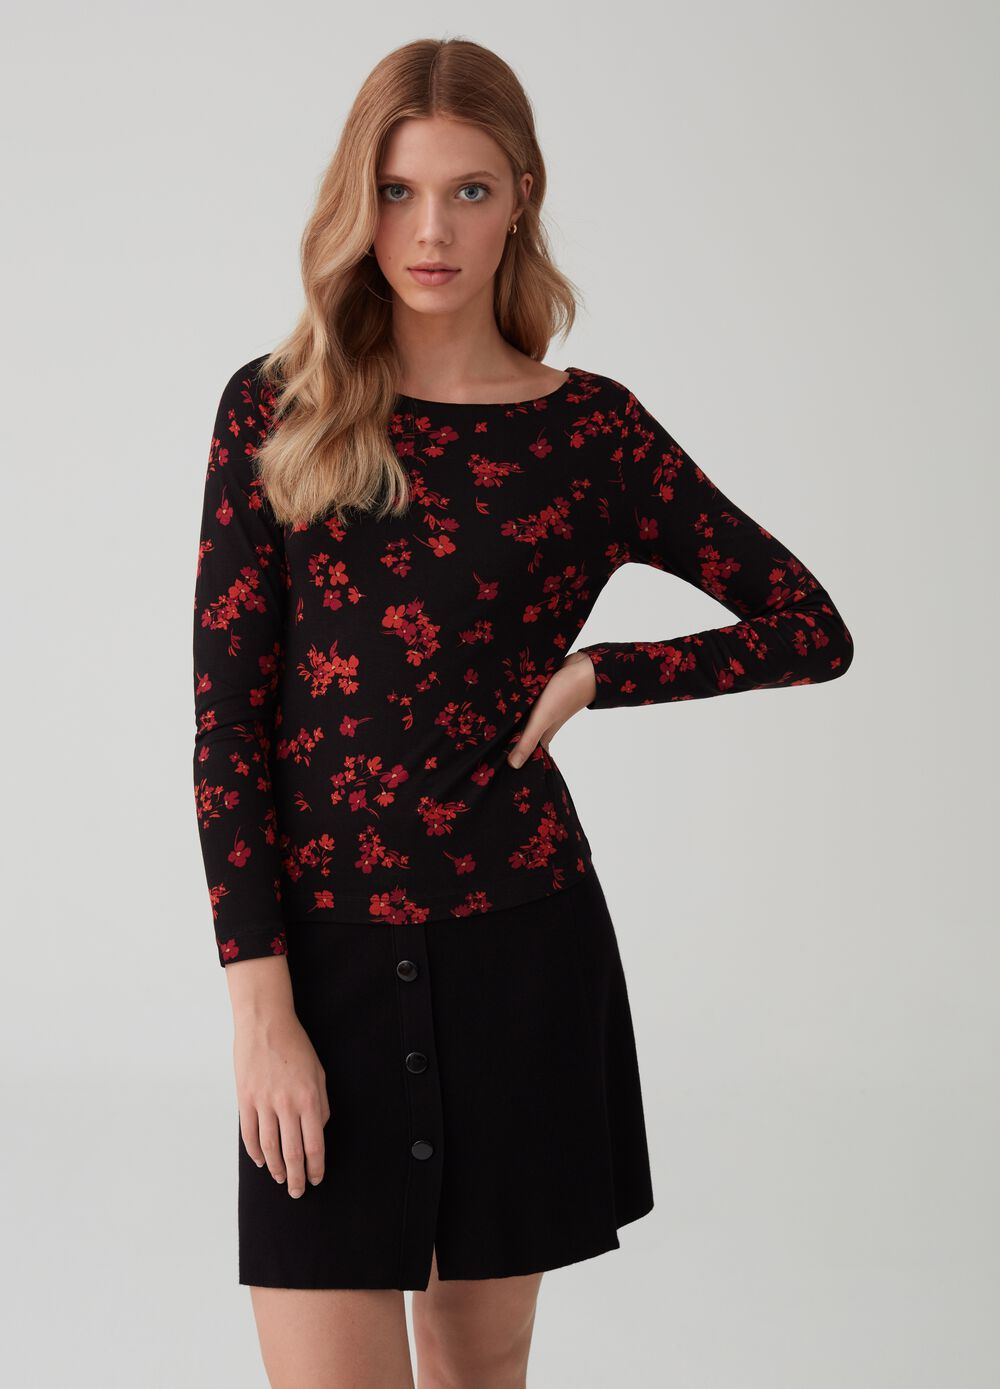 Long-sleeved floral T-shirt